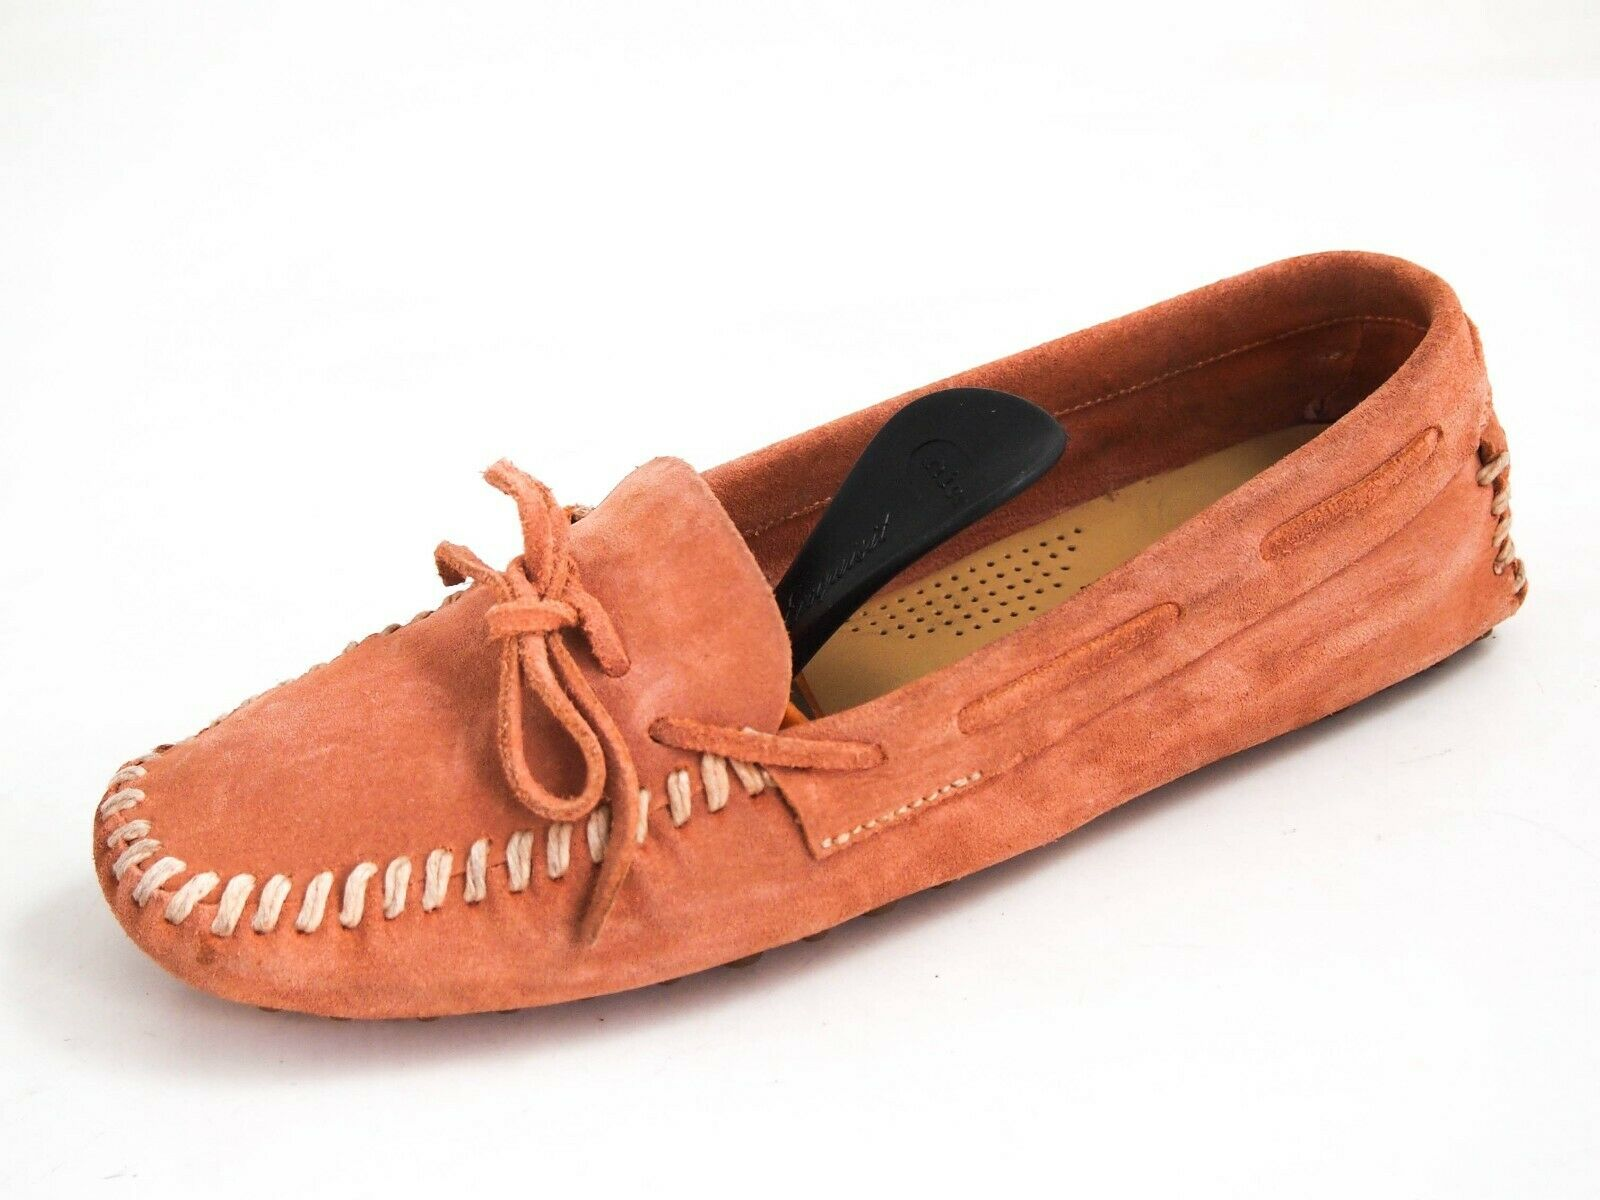 Car schuhe Gommino Driving Loafer Orange Wildleder Damen Größe EU 38 UK  380